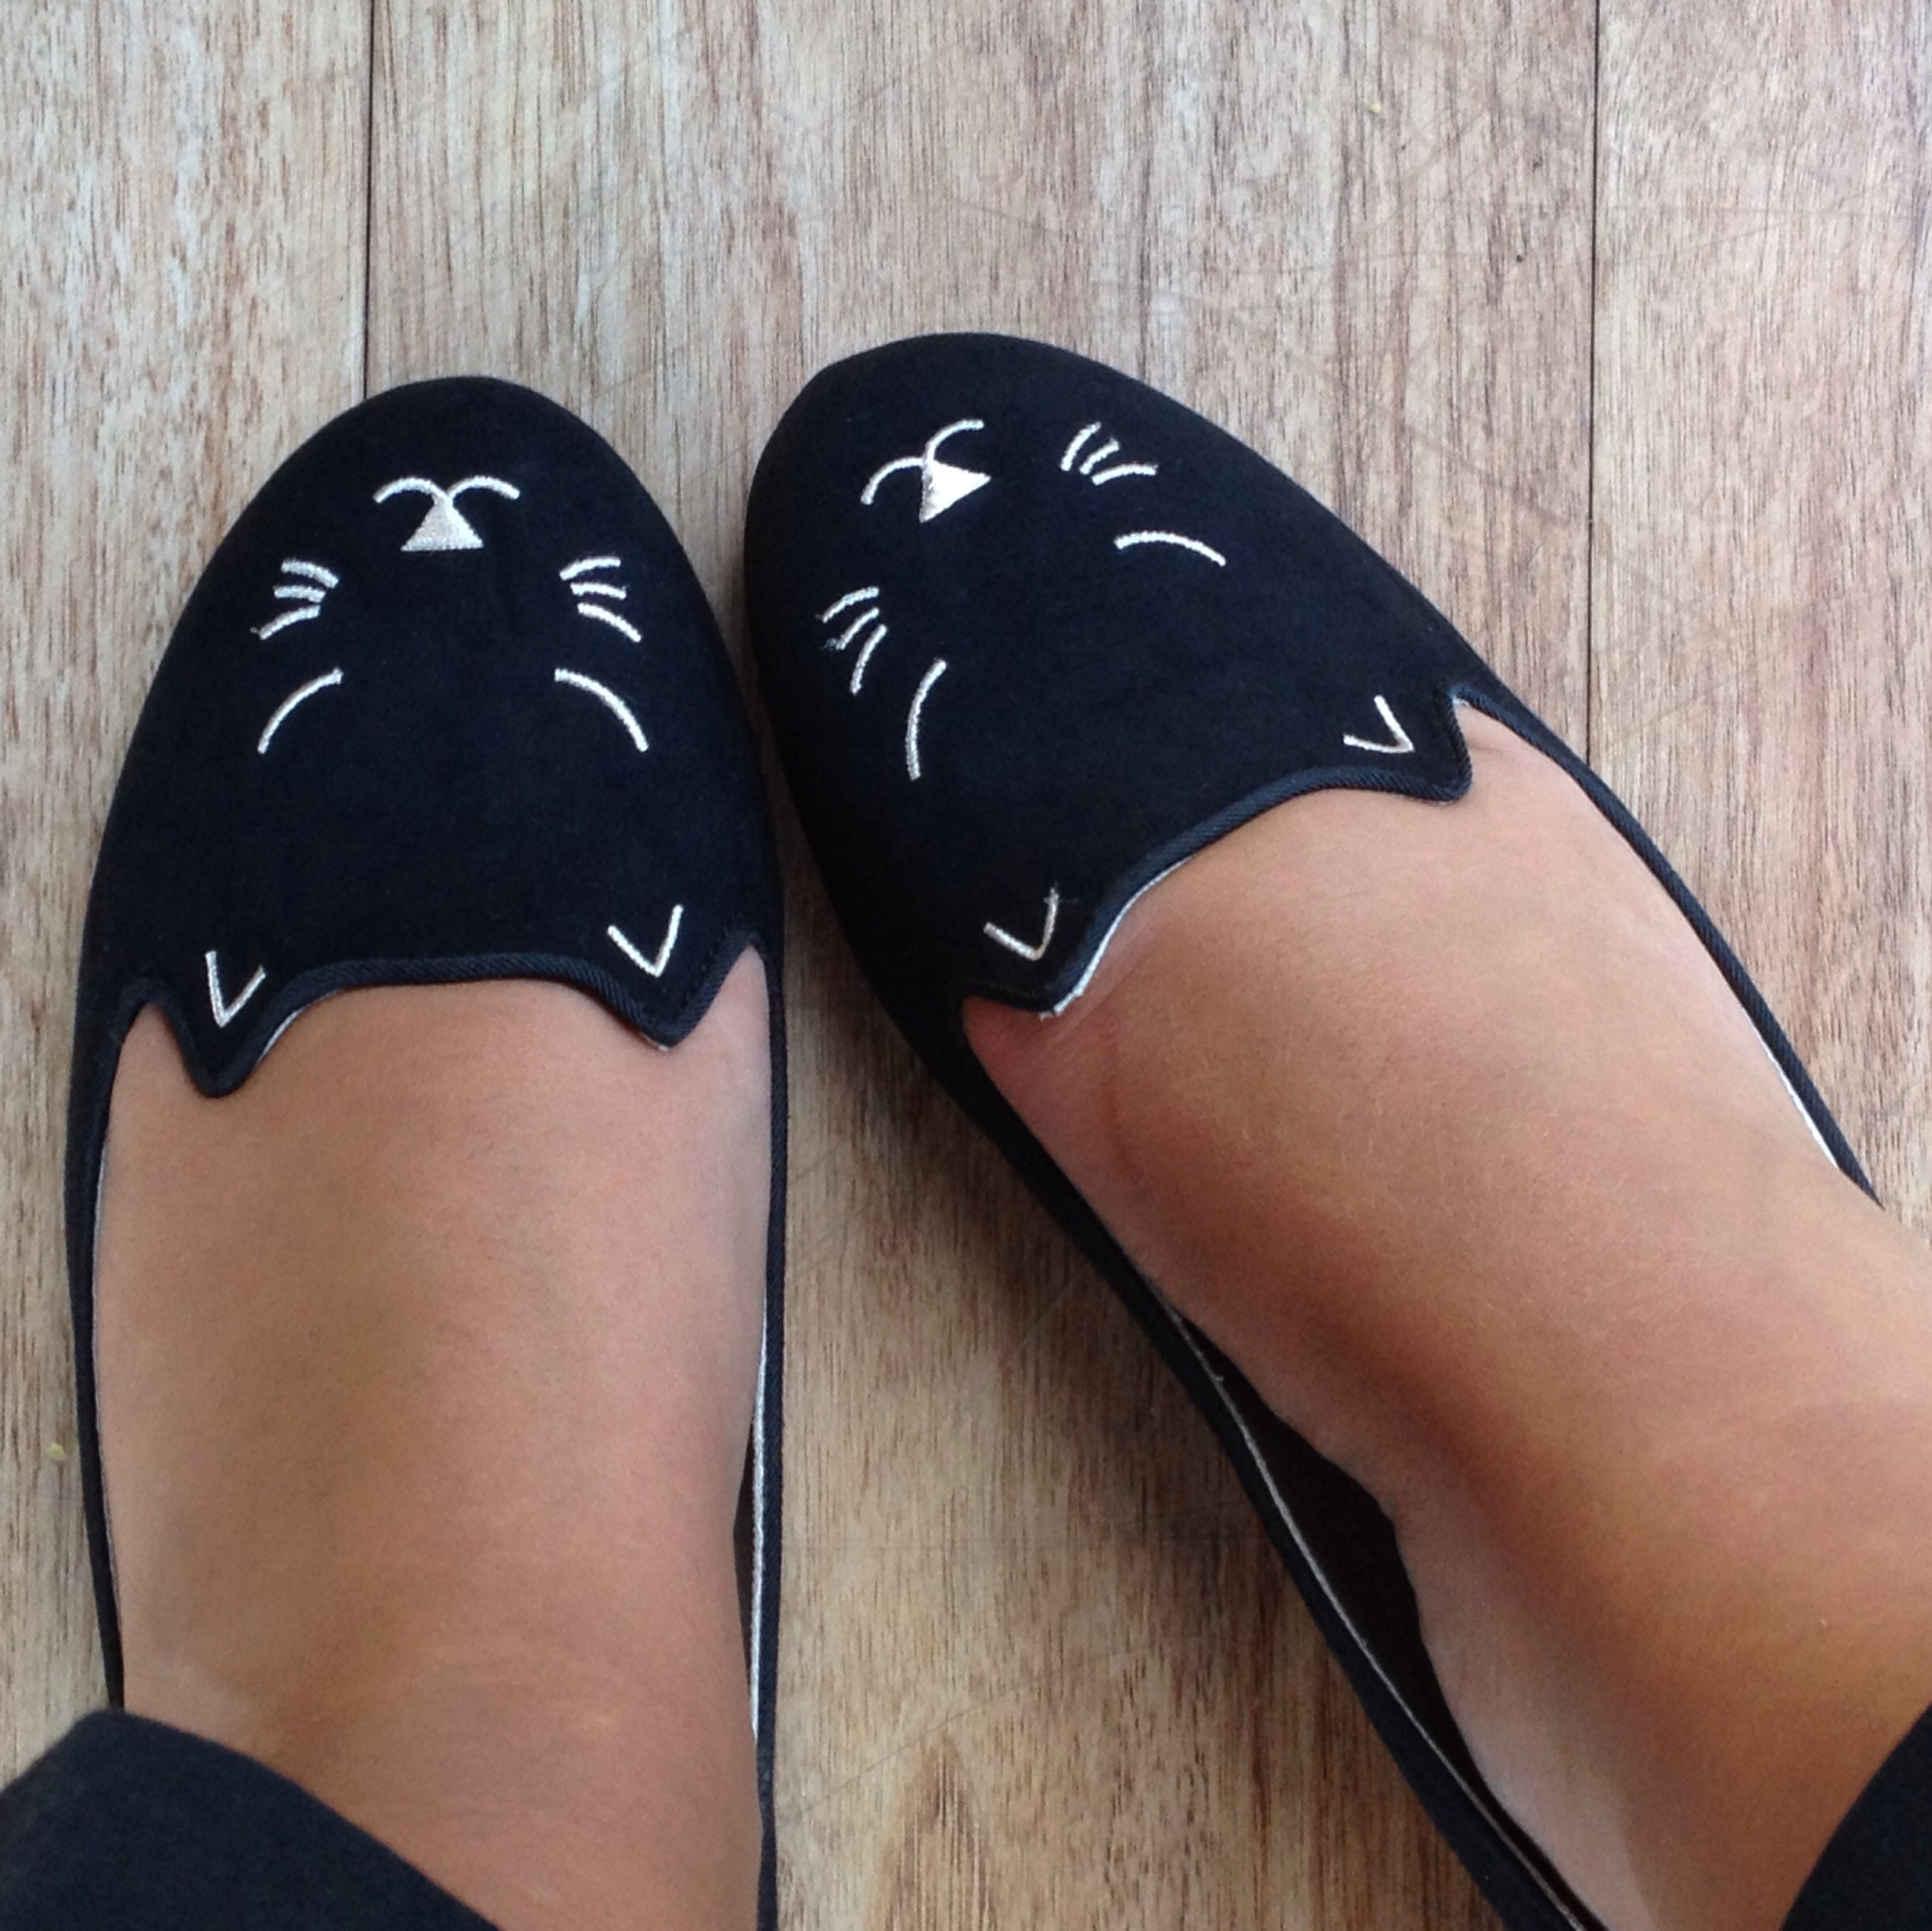 Zara cat shoes Charlotte Olympia style flats